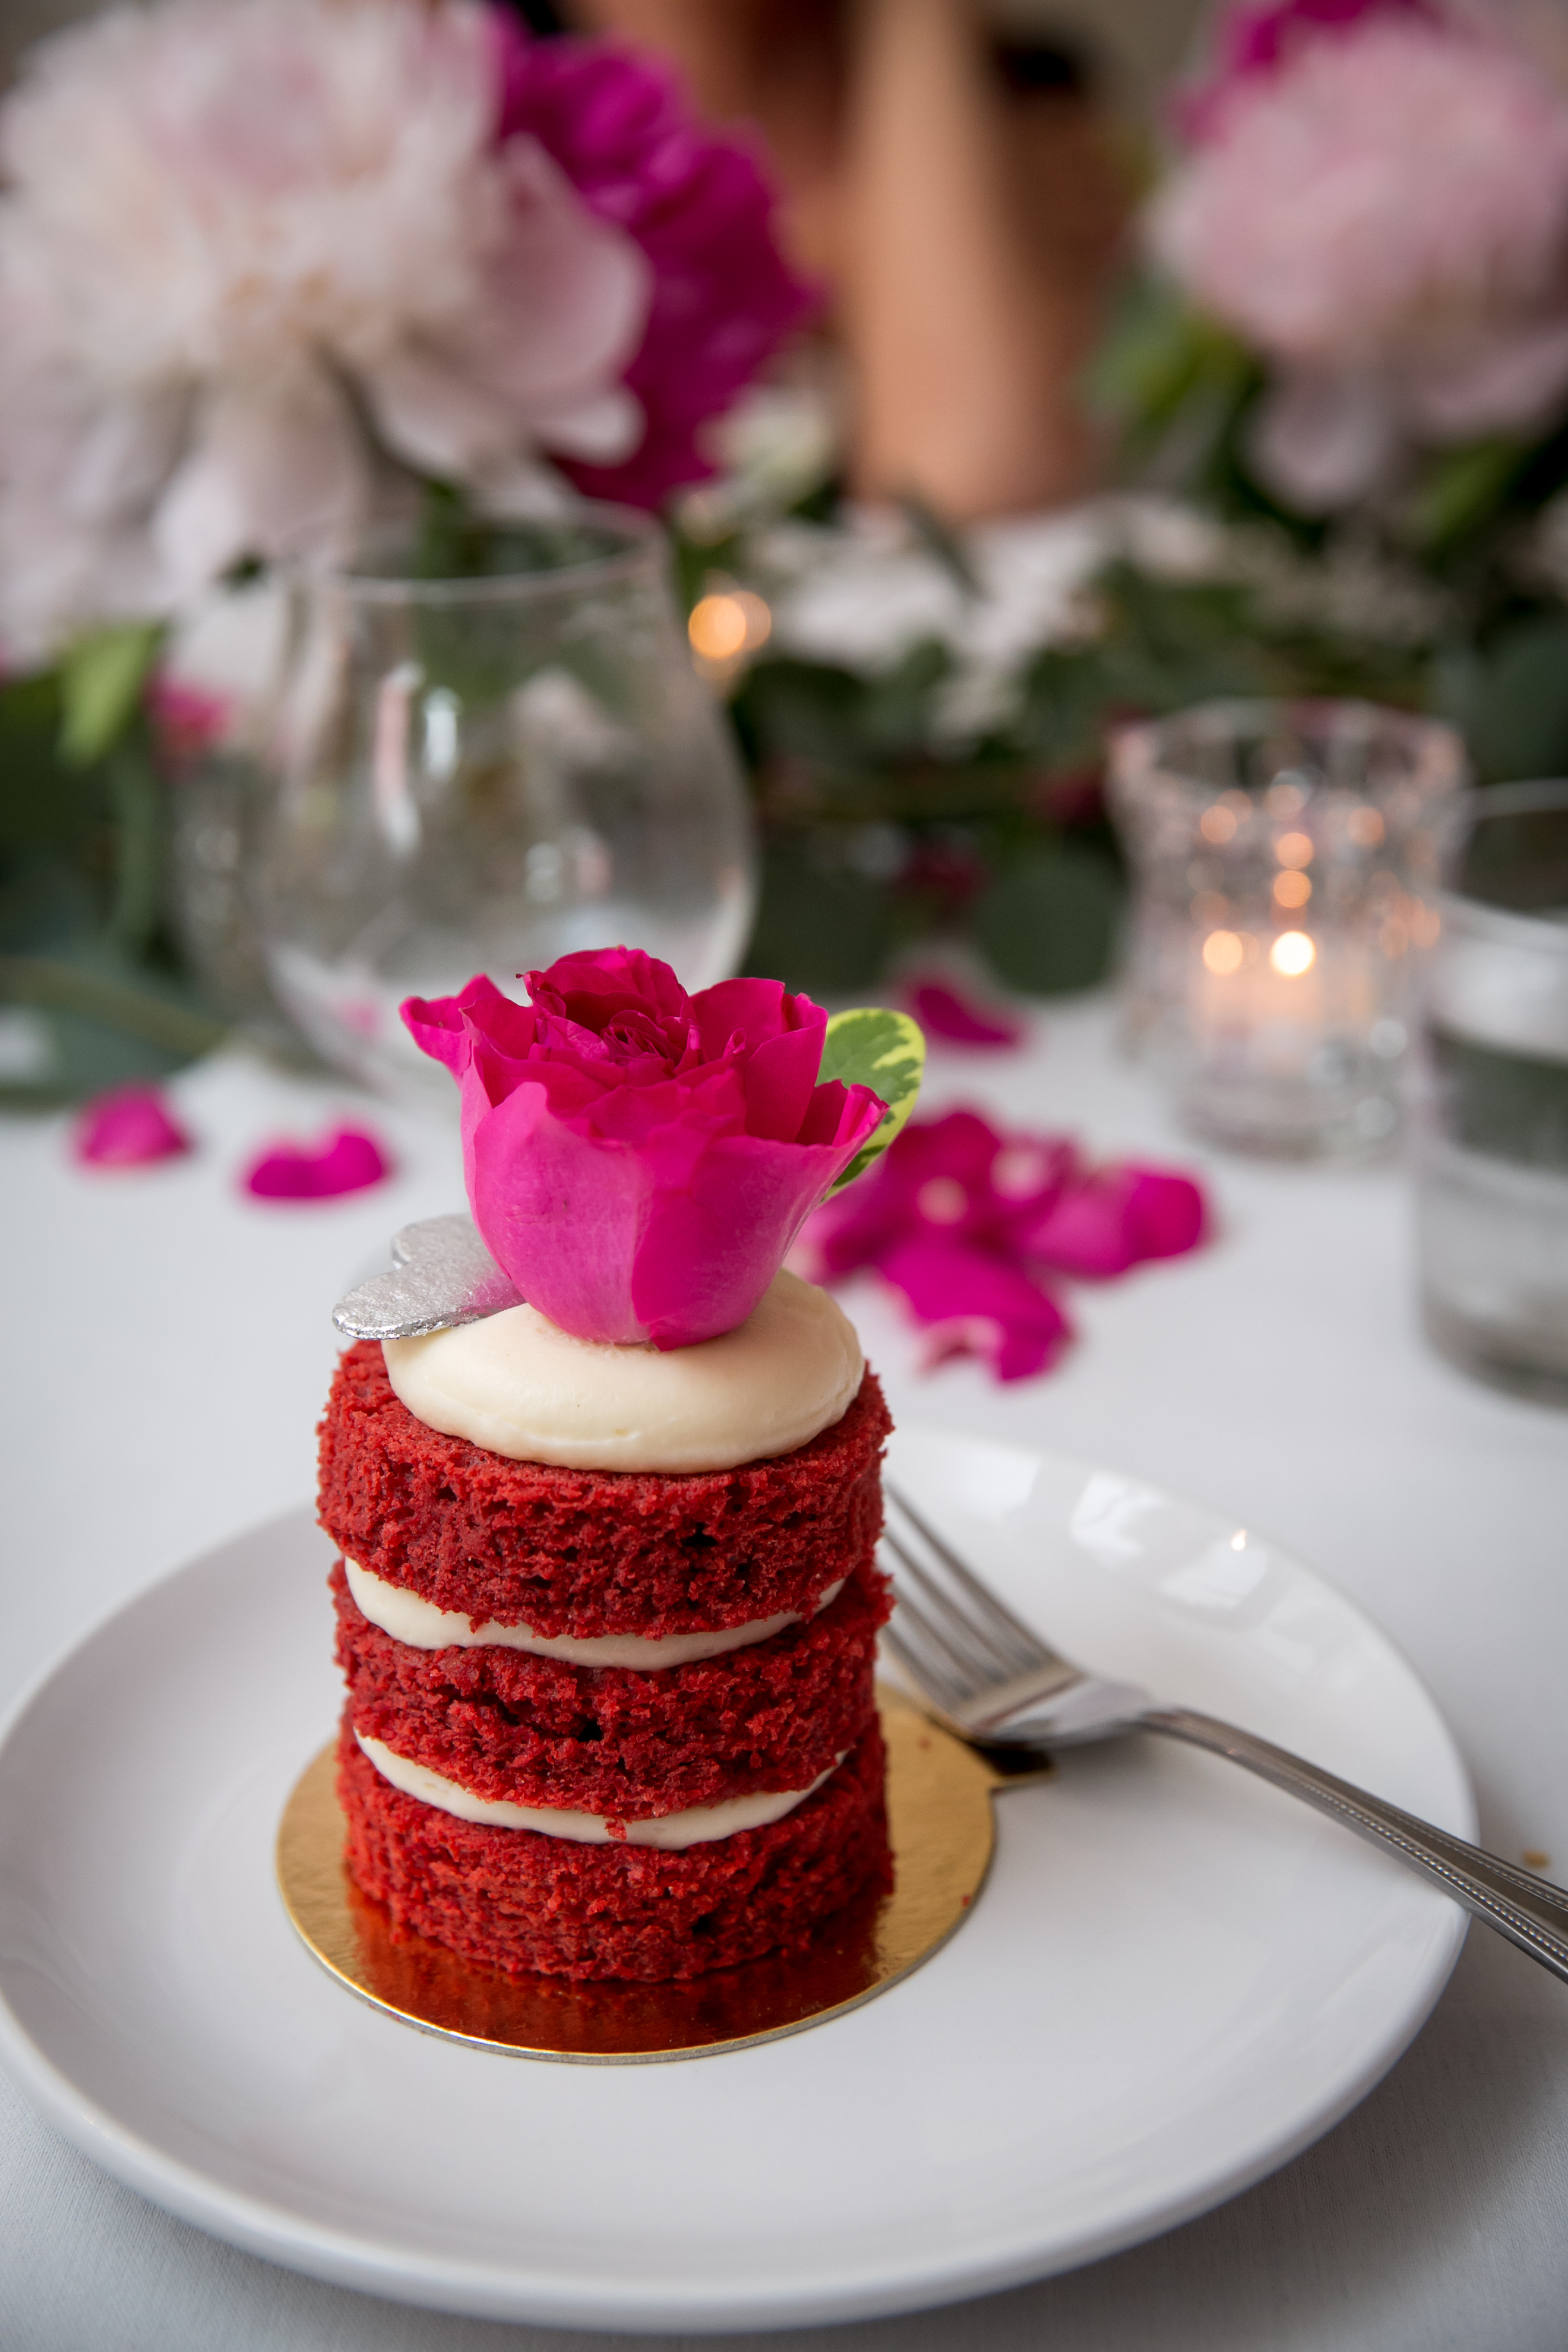 Wedding Cake for One